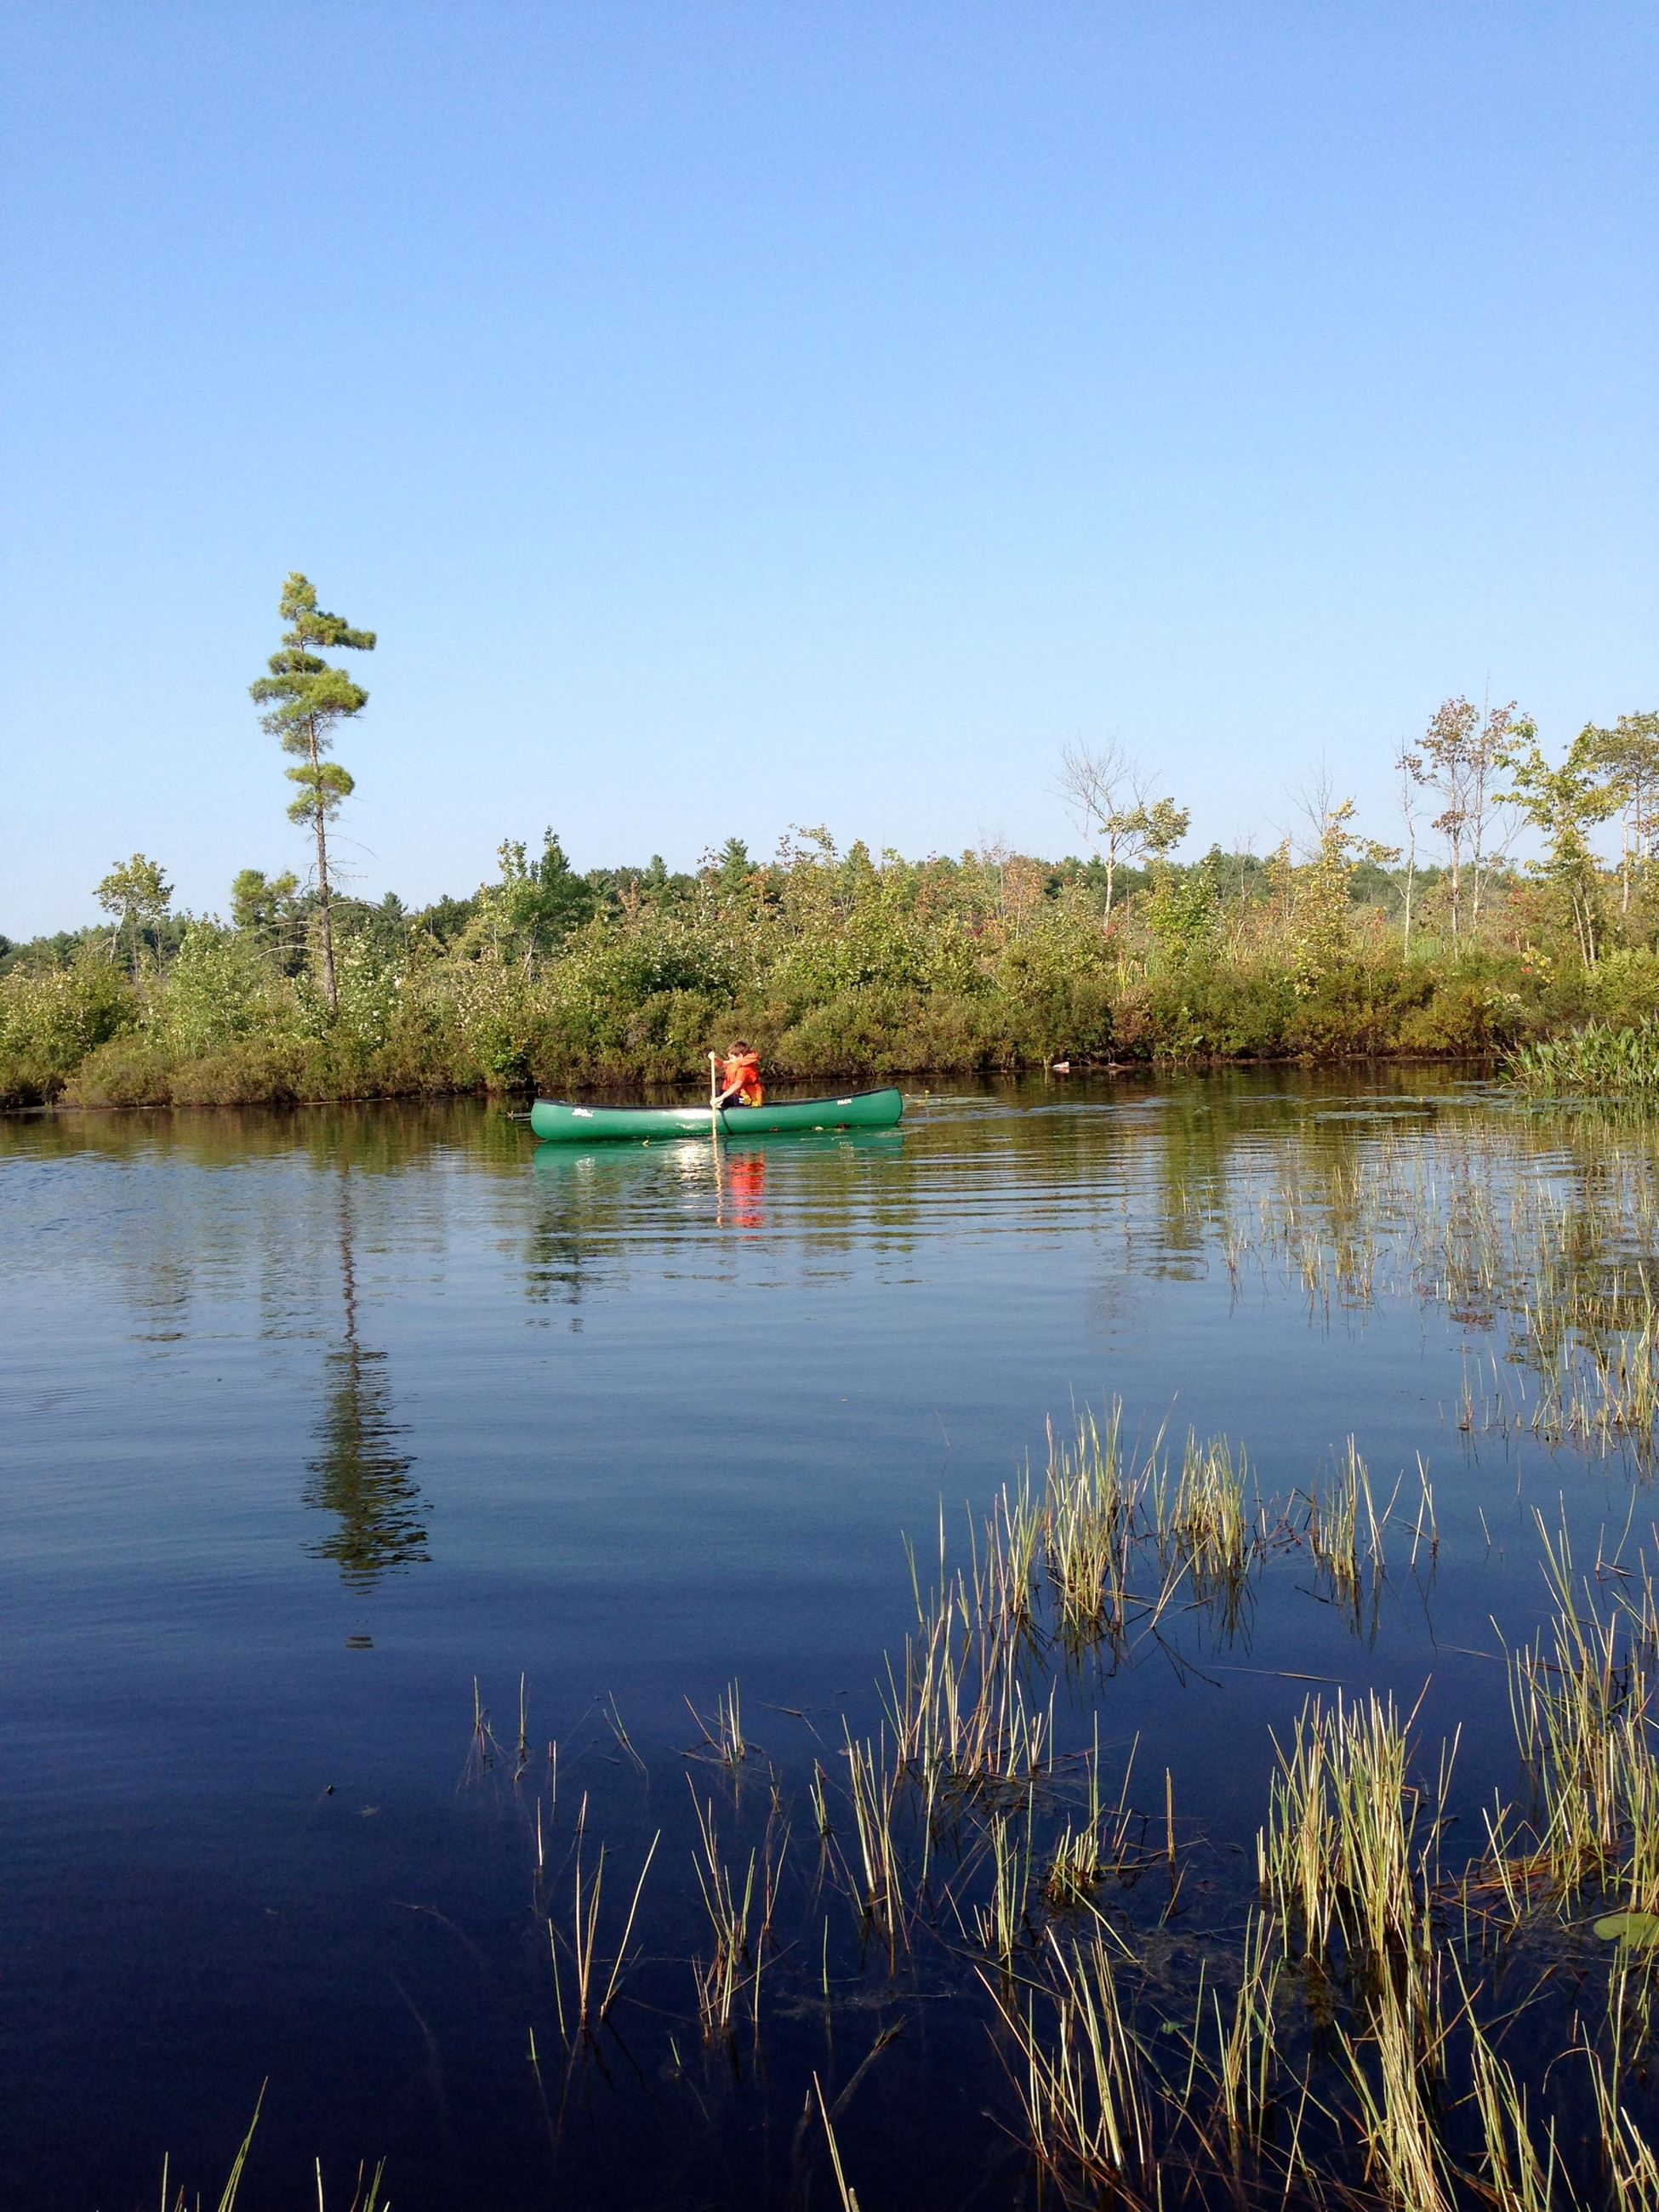 Turee Pond Canoeing (photo by Sandra Crystall)